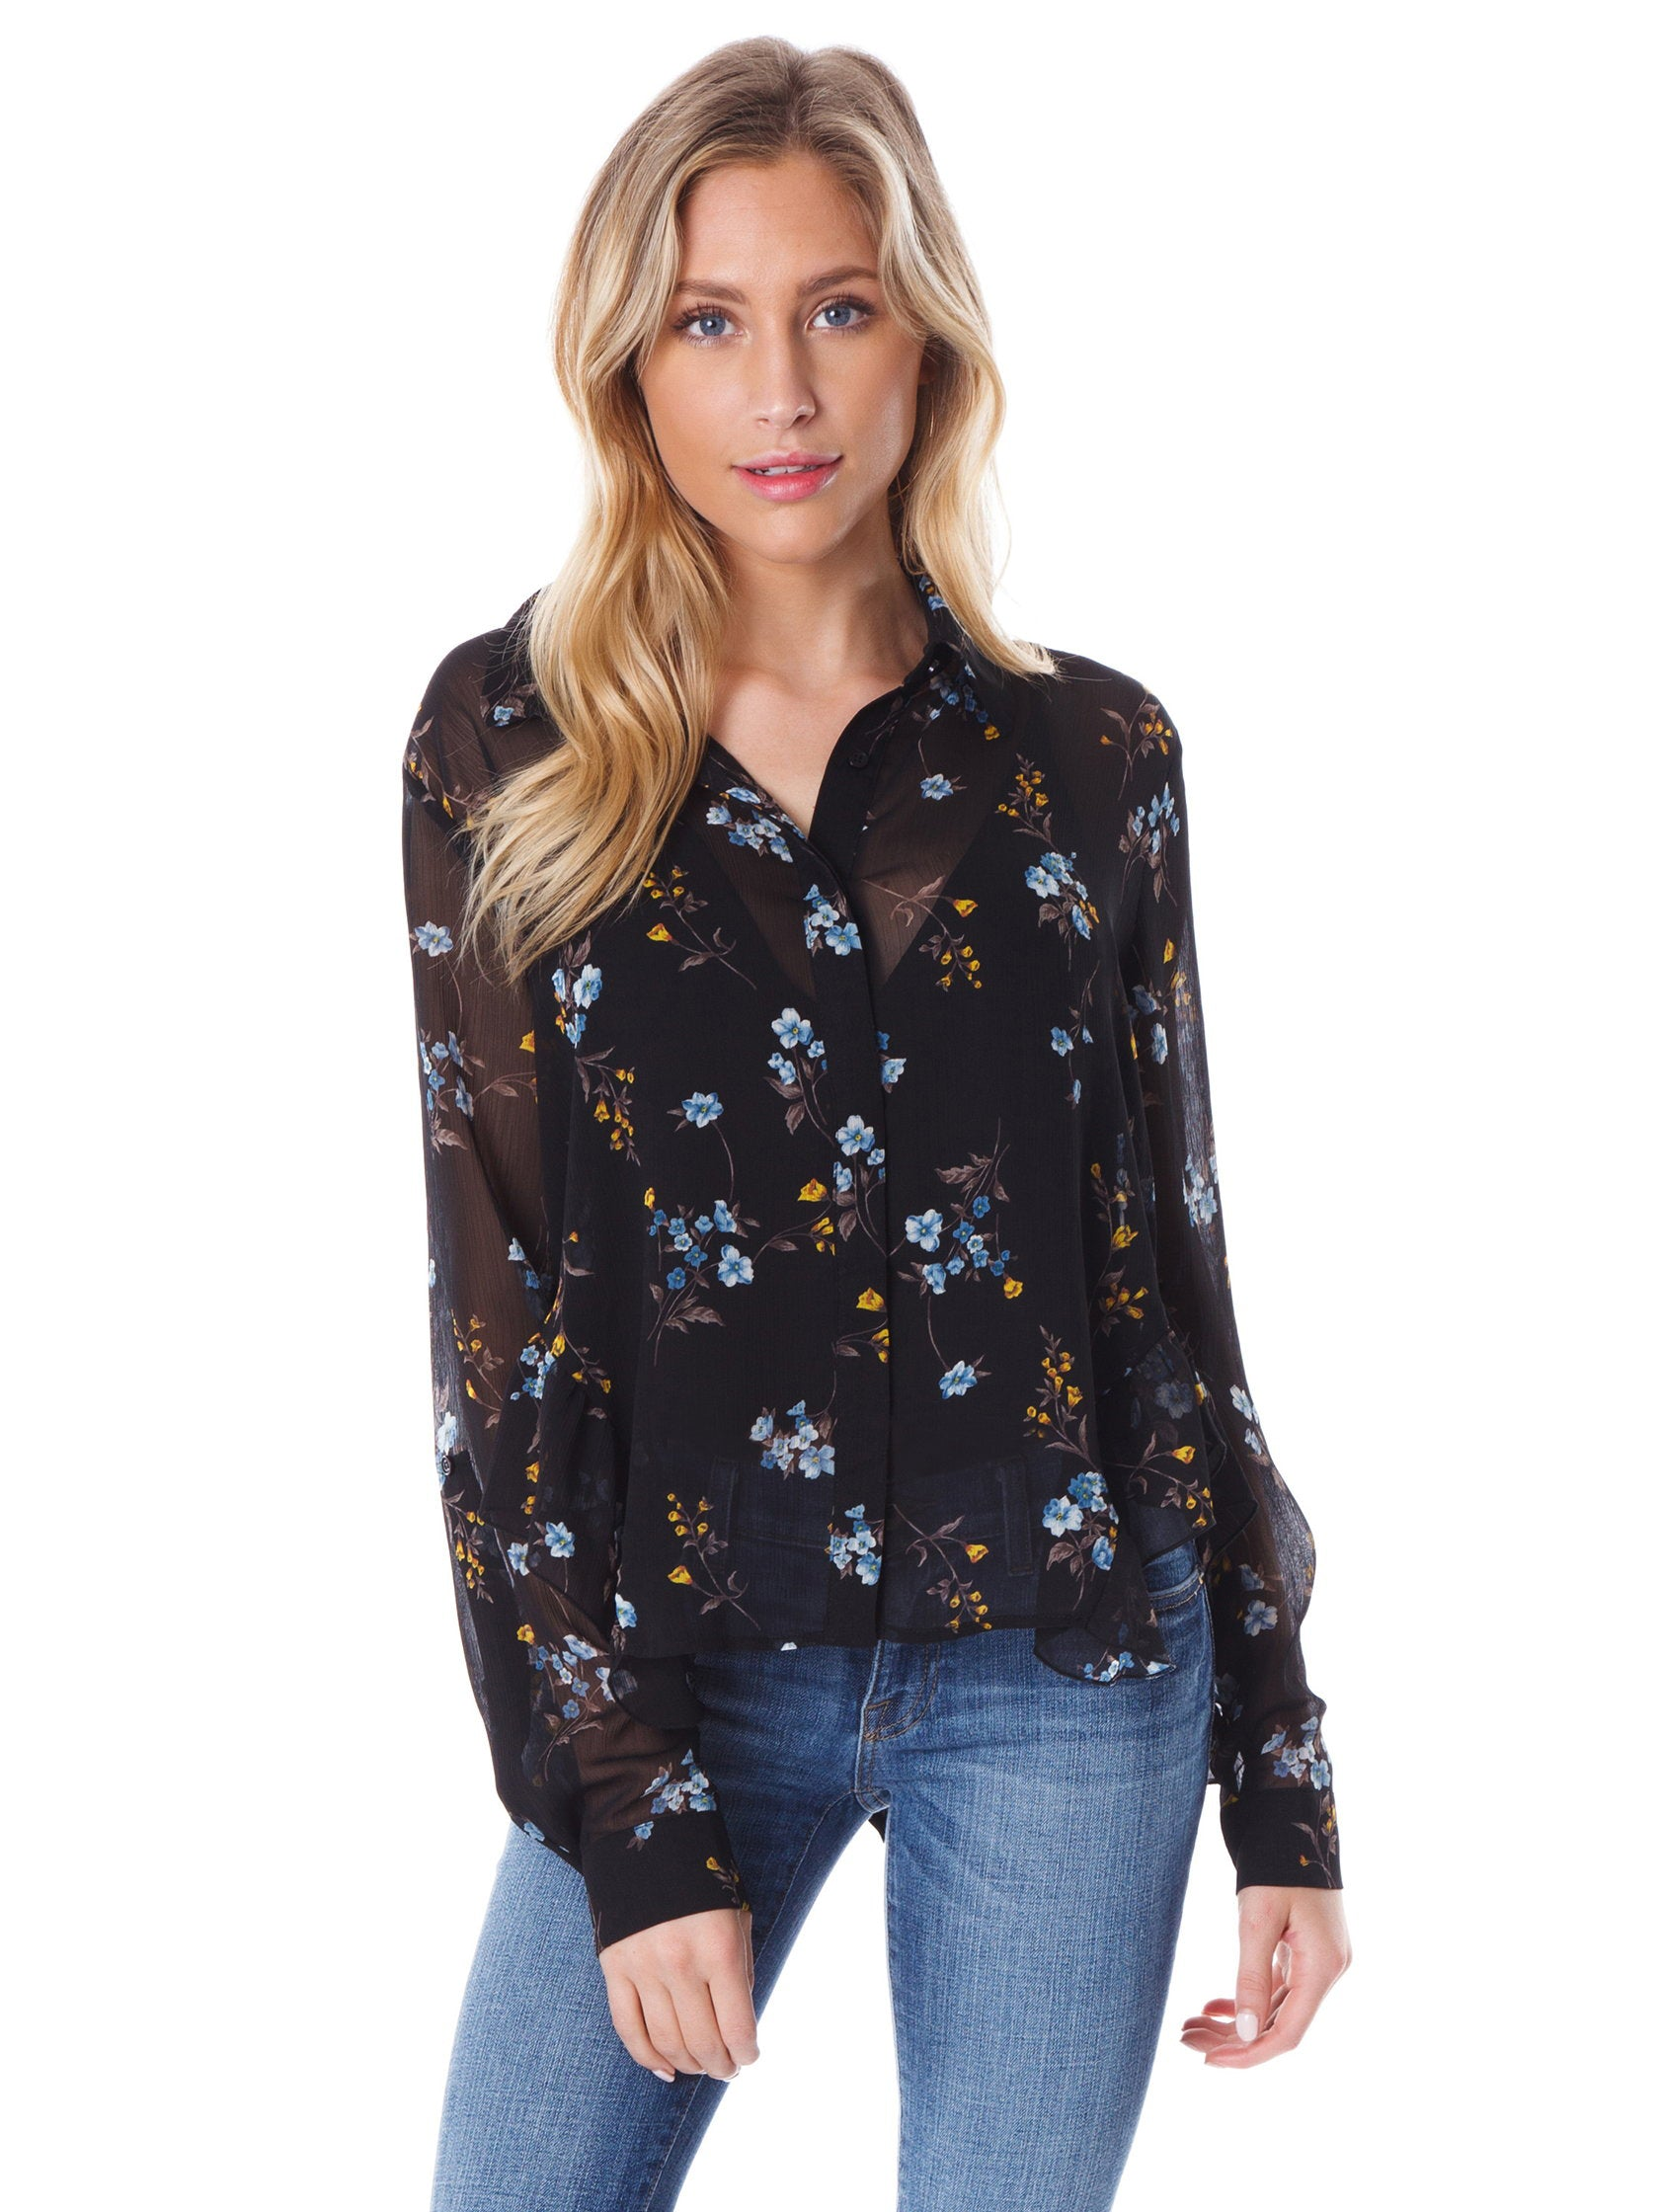 Woman wearing a top rental from FashionPass called In Full Bloom Blouse